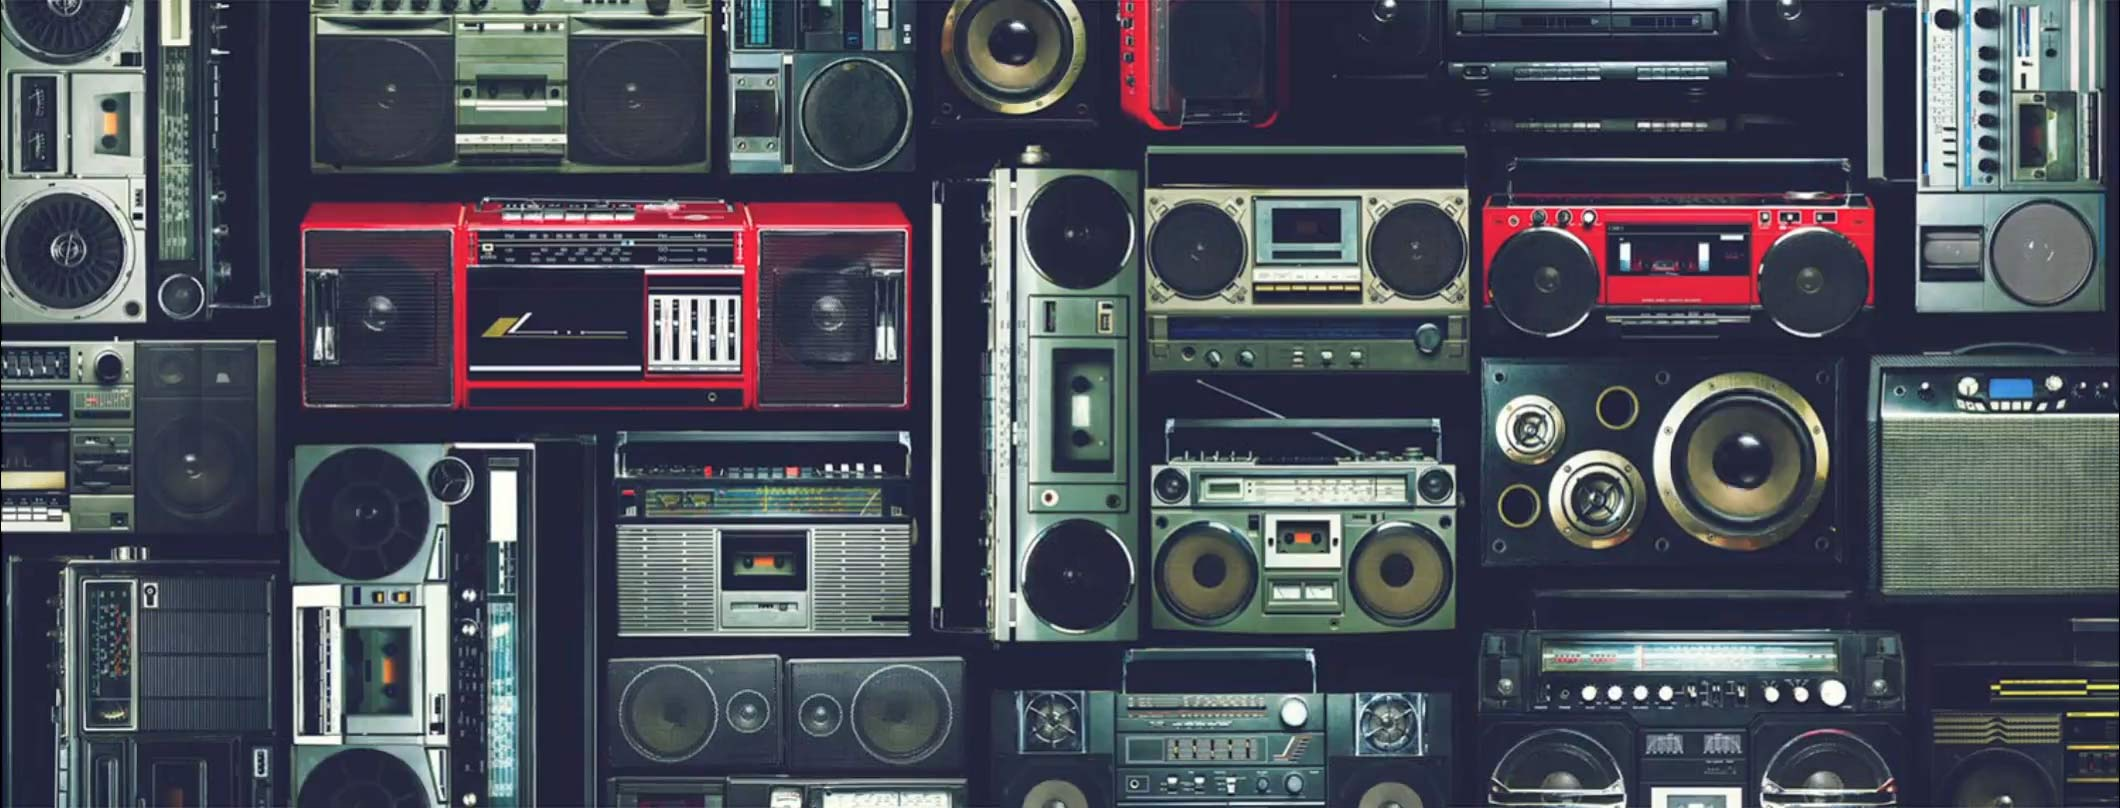 Background image of retro tape decks